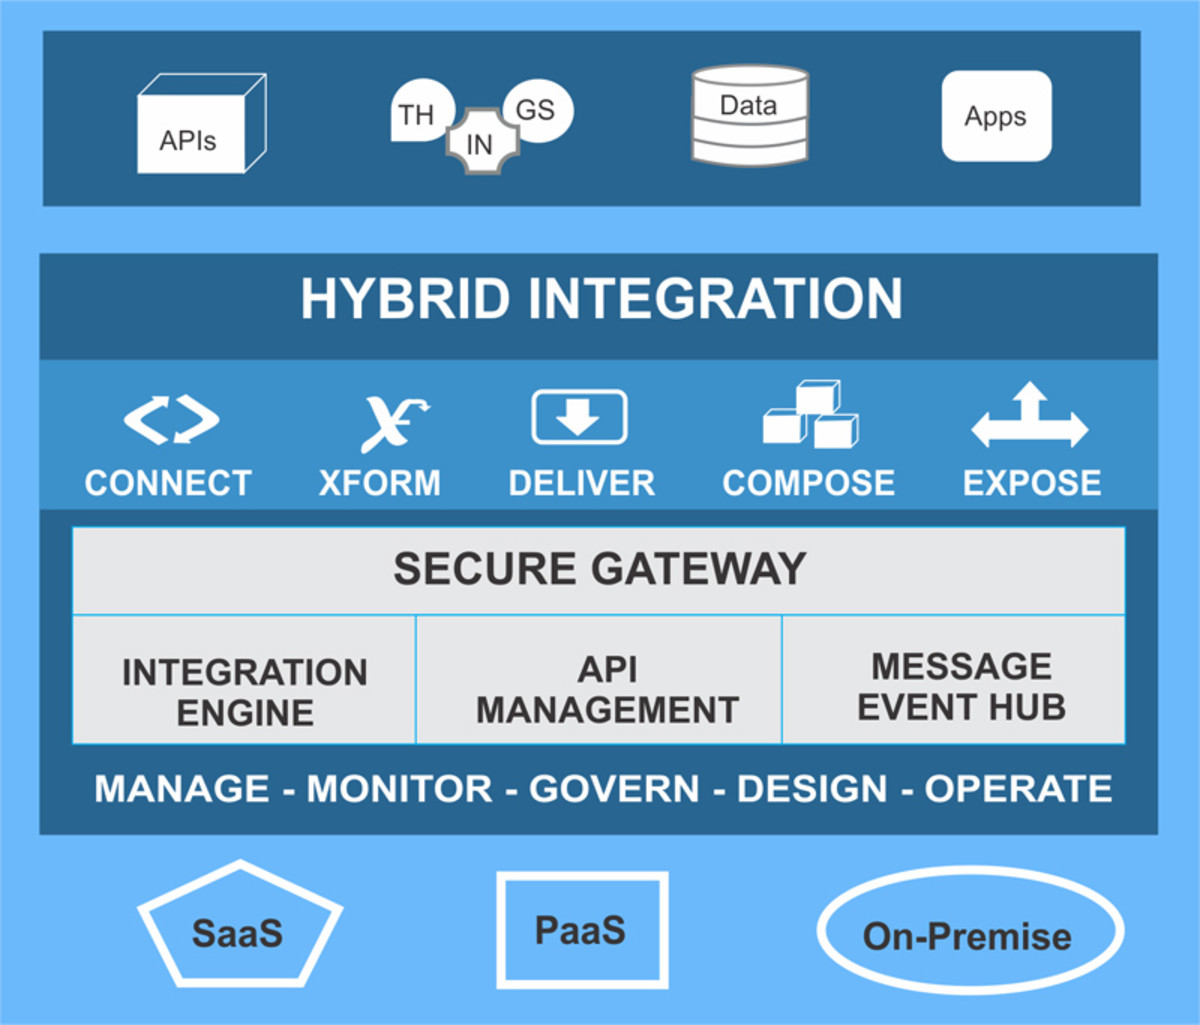 Hybrid Integration Based on LOB Needs